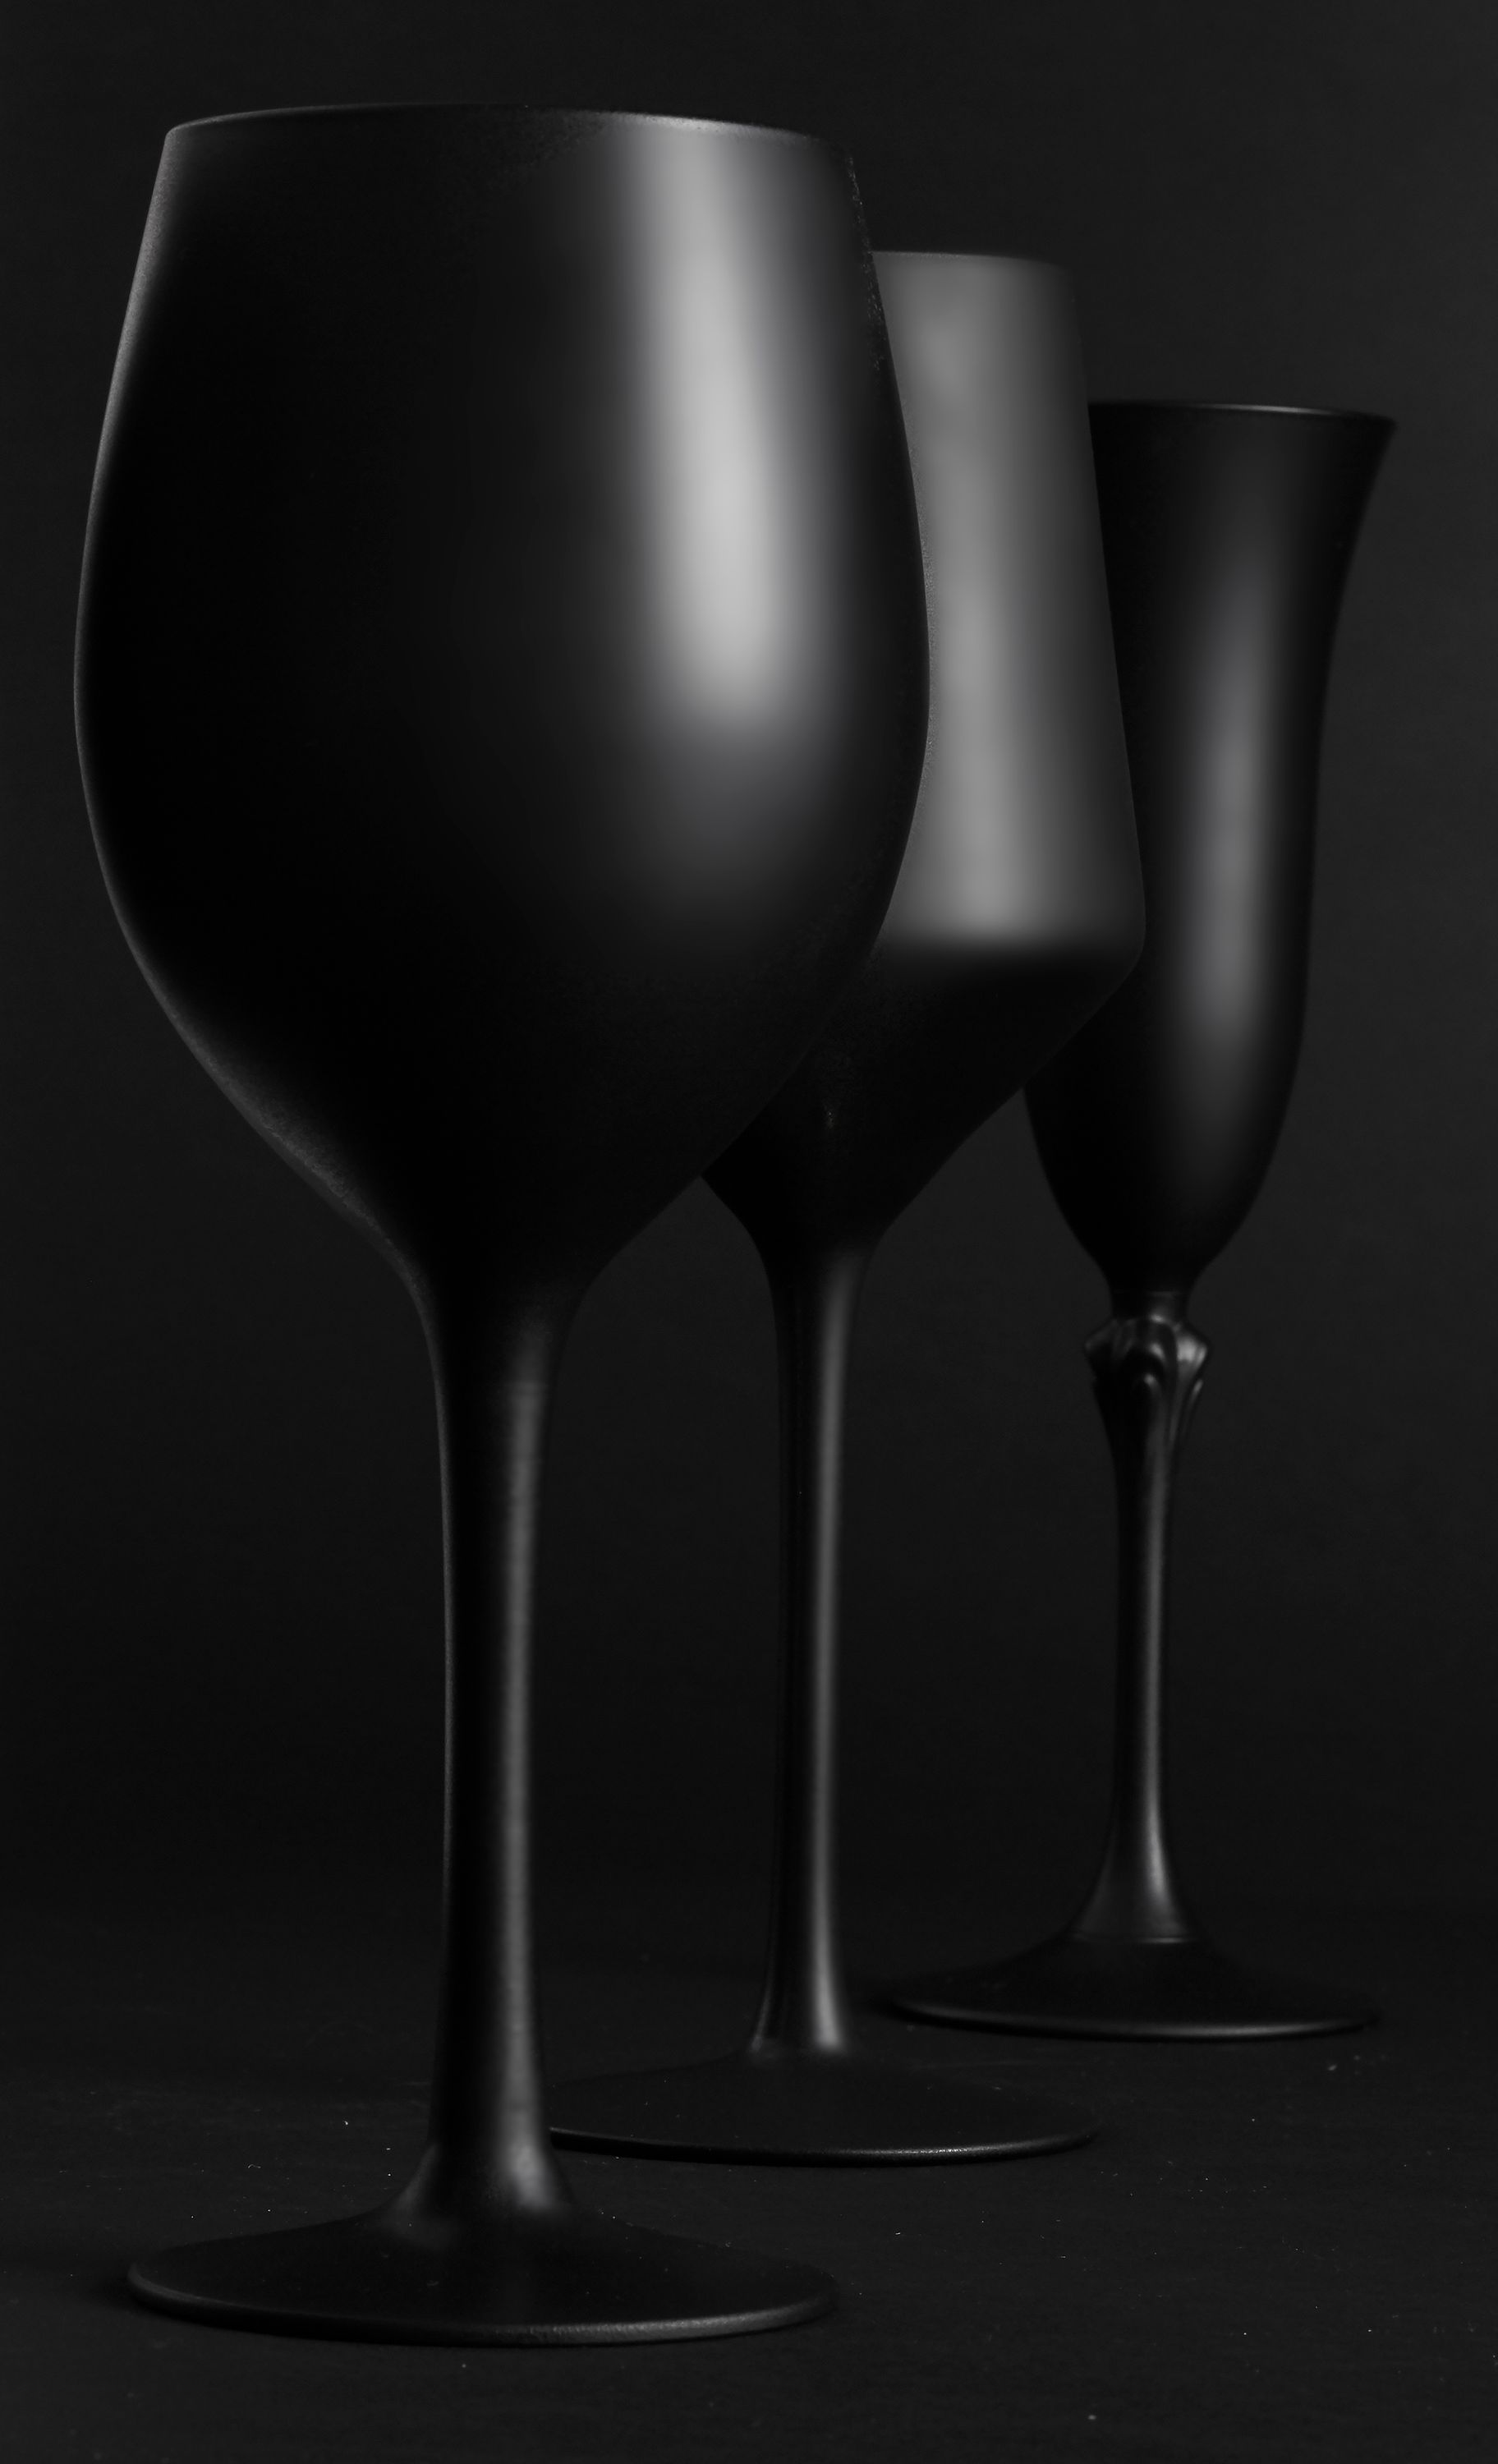 Wine_GLasses_Black_Testing0186.jpg